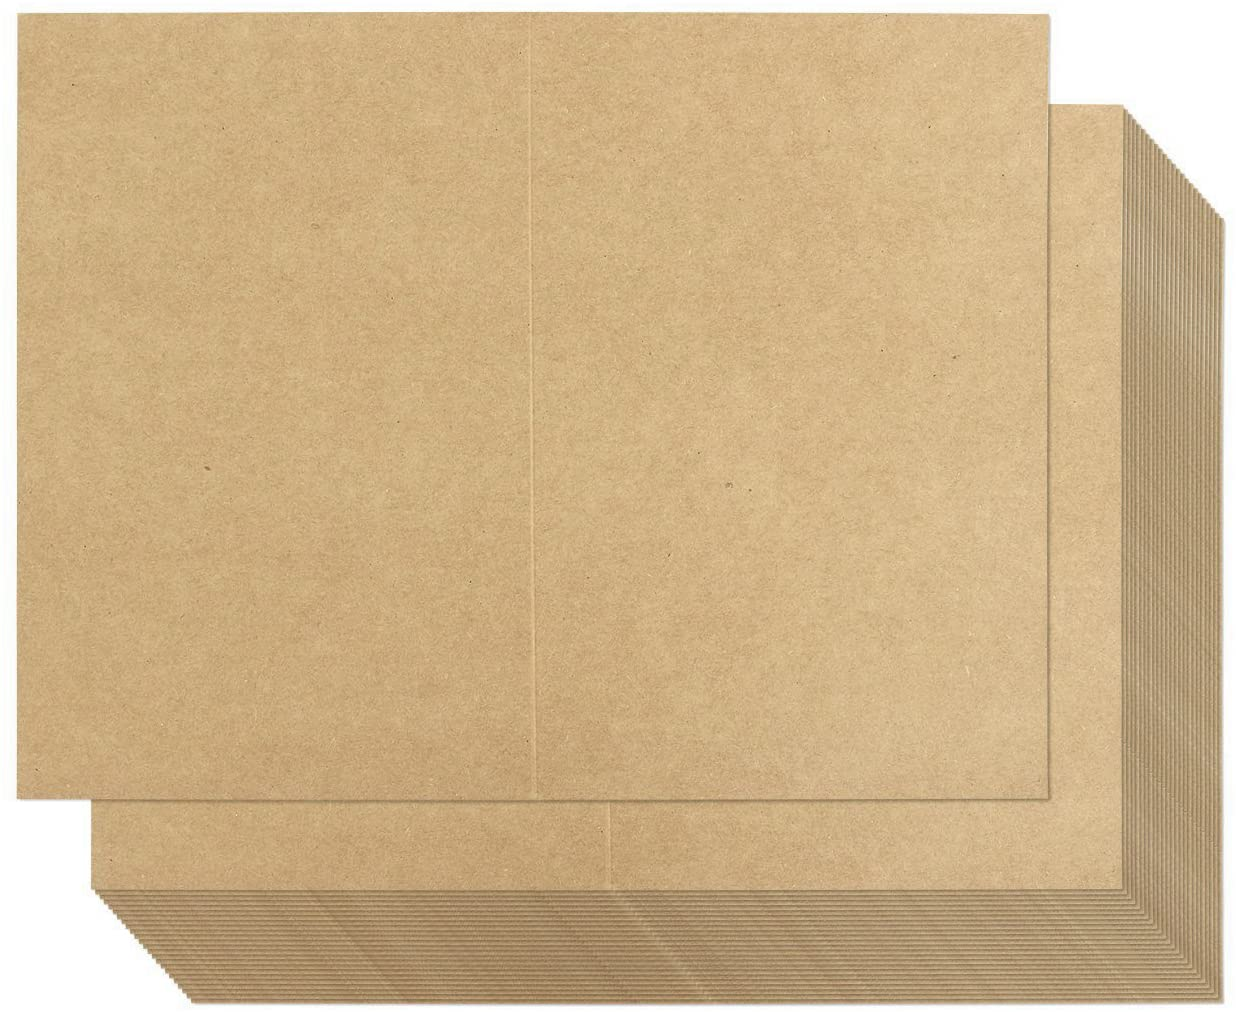 100 Sheets Kraft Greeting Card Stock - Half Fold Greeting Cards for Inkjet and Laser Printers, Printable Blank Note Cards, 8.5 x 5.5 Inches Folded